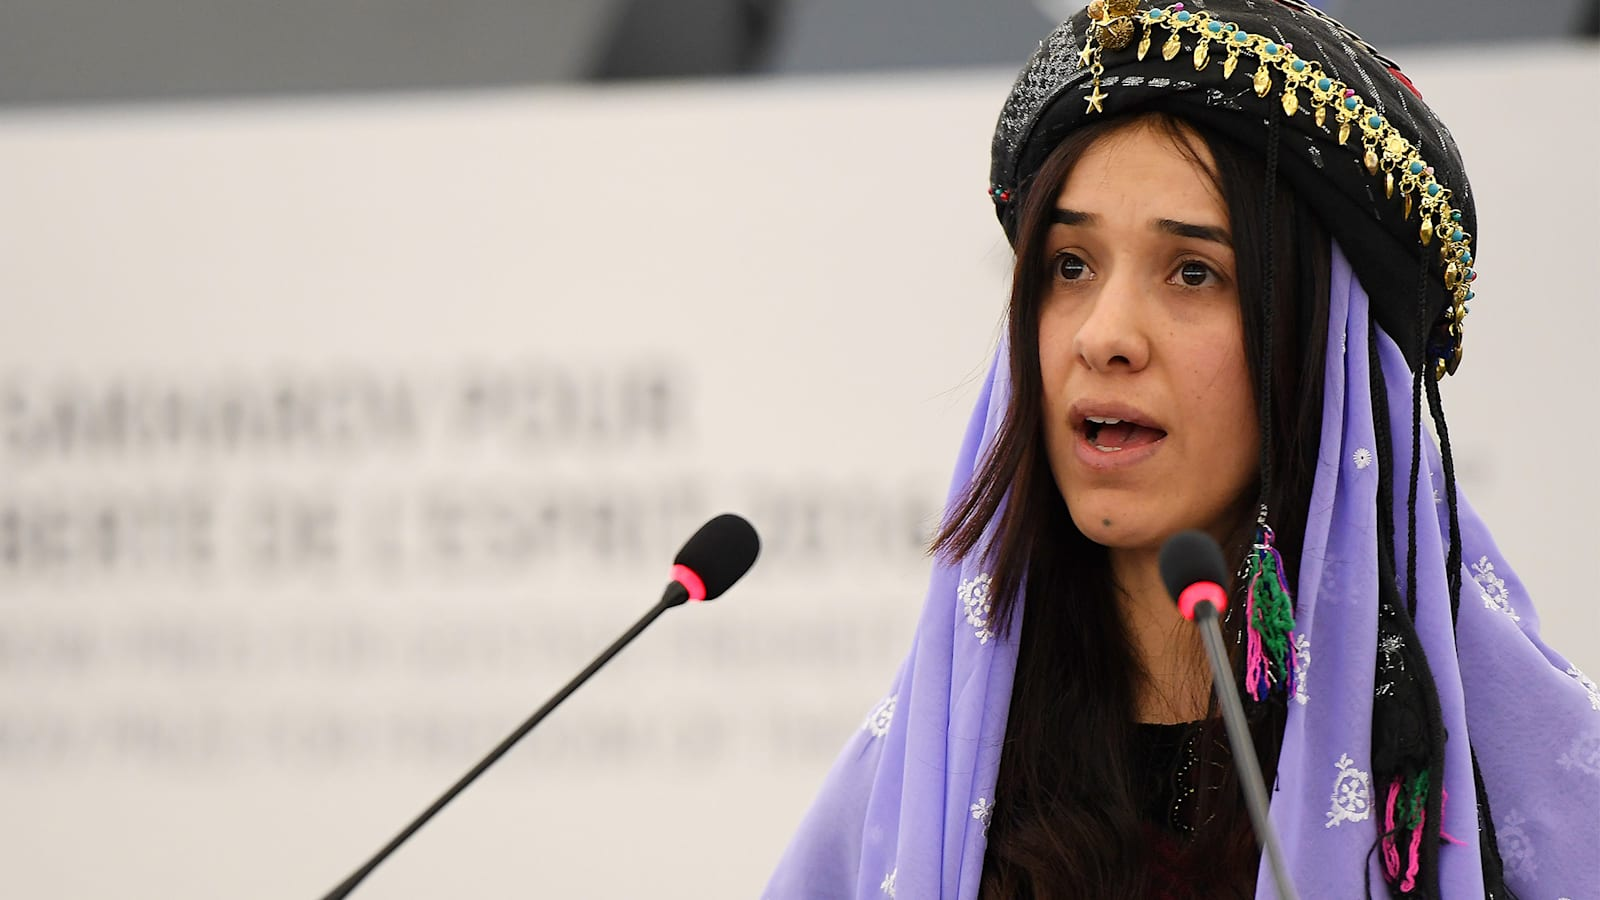 All About 25-Year-Old Nobel Peace Prize Winner Nadia Murad